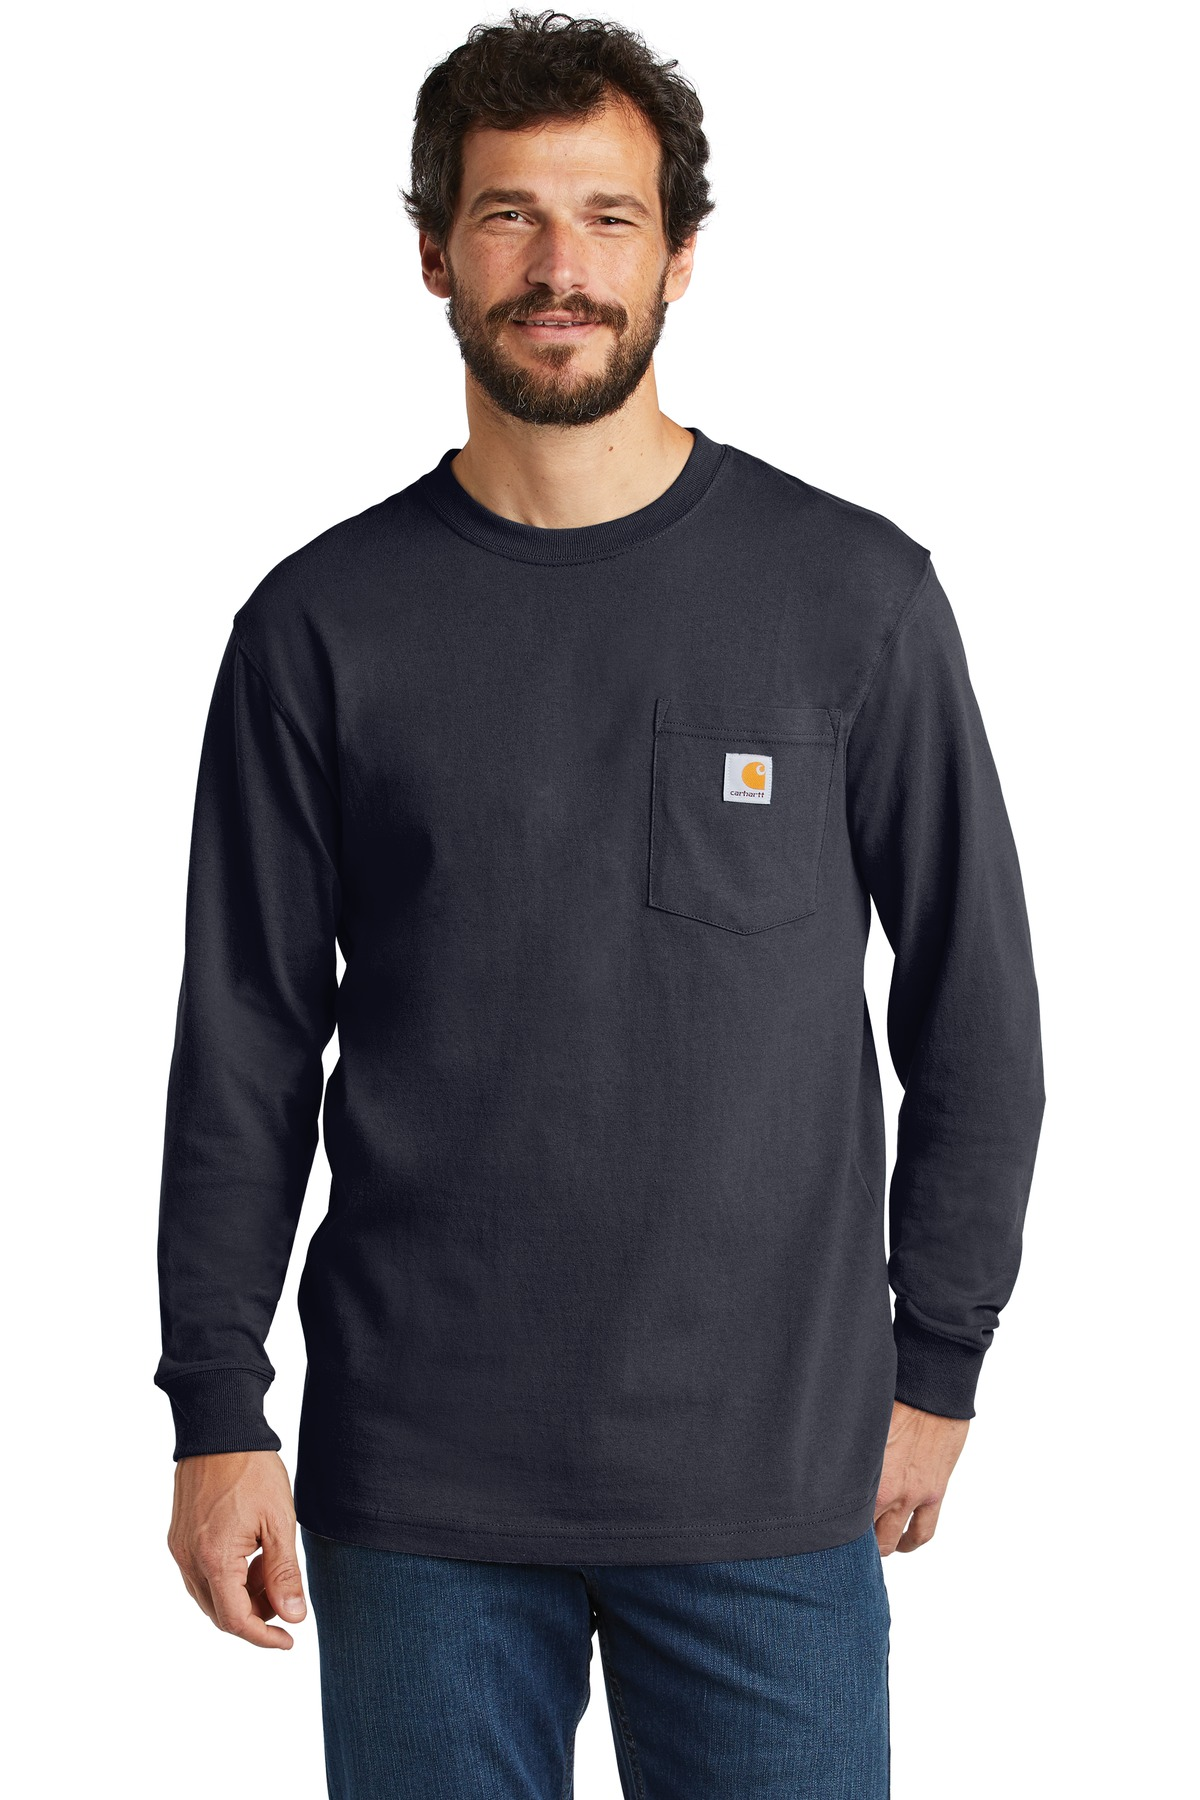 Carhartt  ®  Workwear Pocket Long Sleeve T-Shirt. CTK126 - Navy